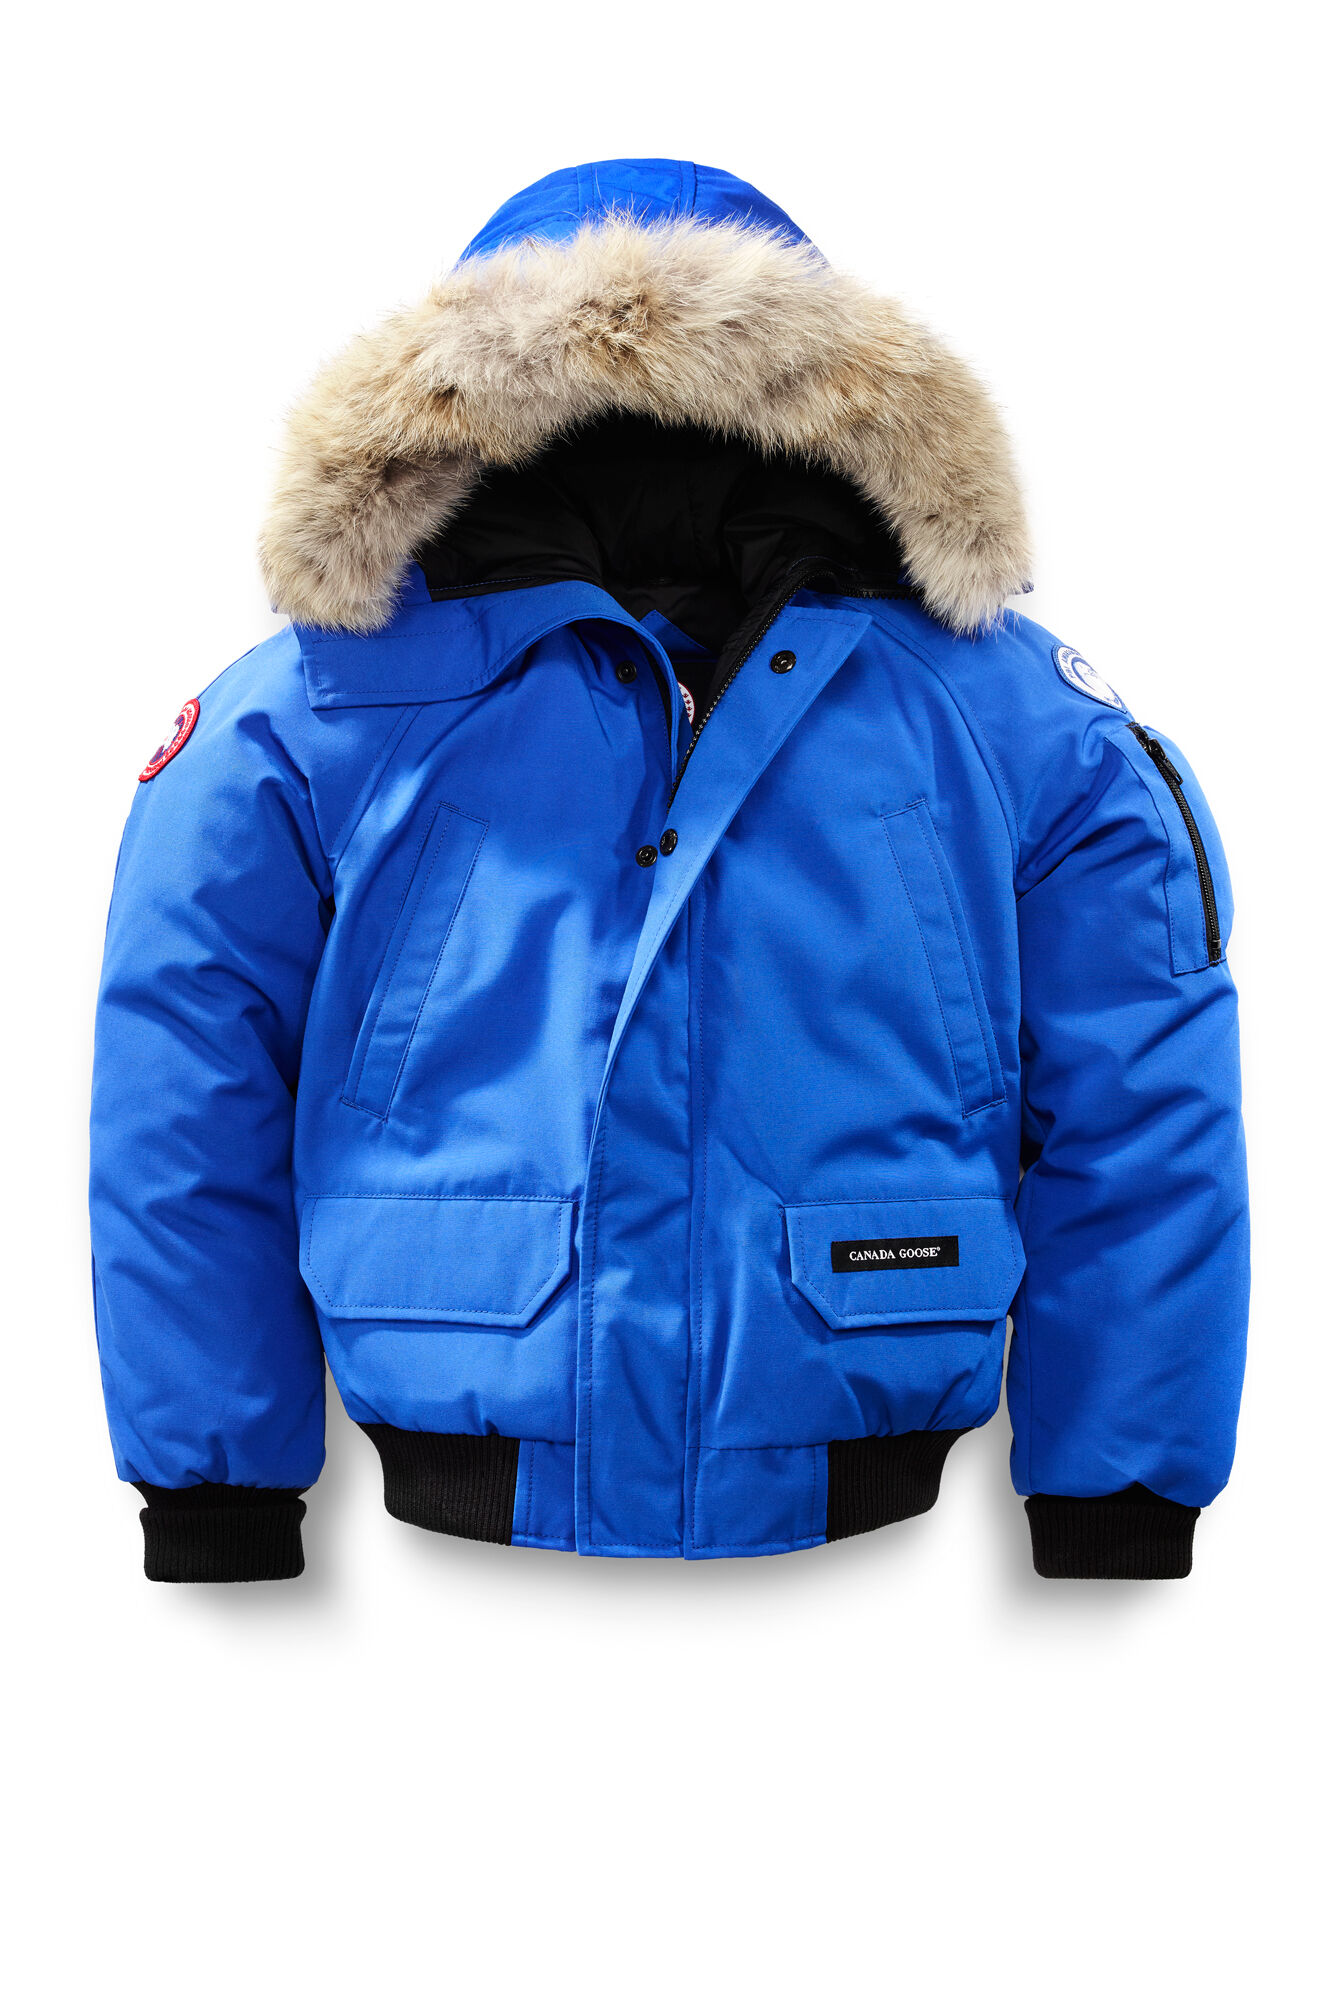 Canada Goose expedition parka online discounts - Youth Outerwear | Parkas Pants Gloves | Canada Goose?